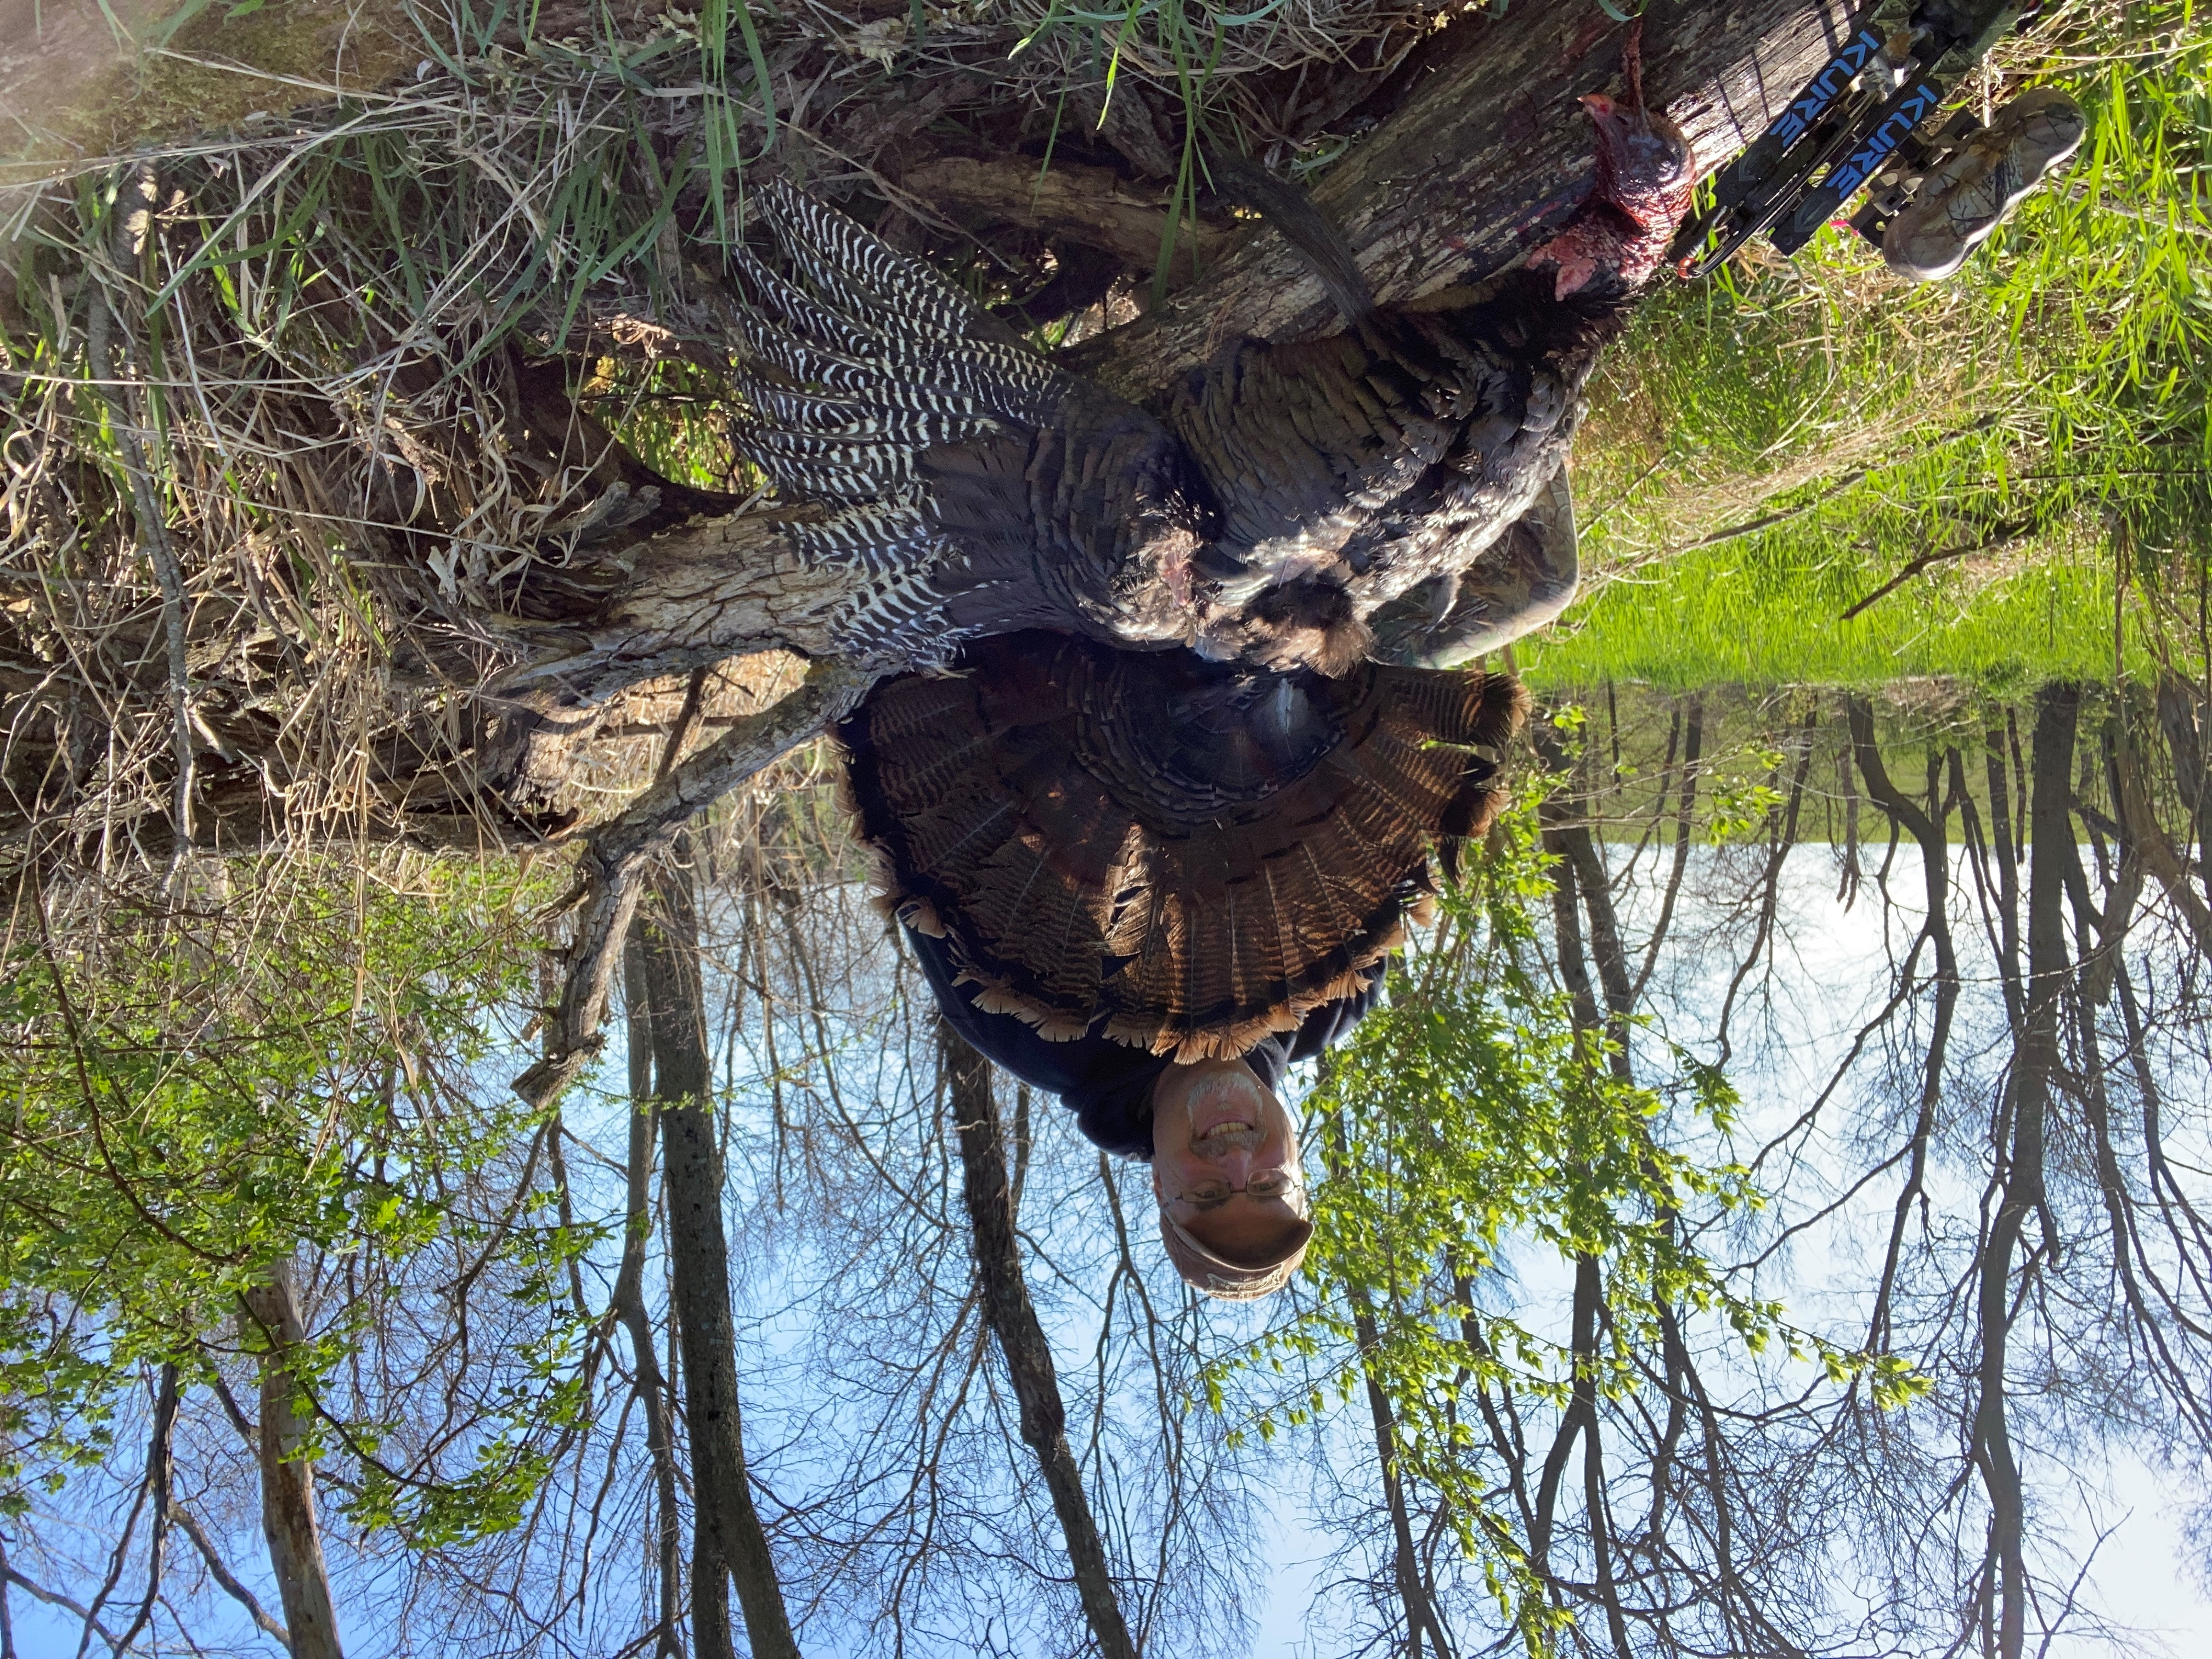 Outdoors Dan Young with an Impressive Turkey